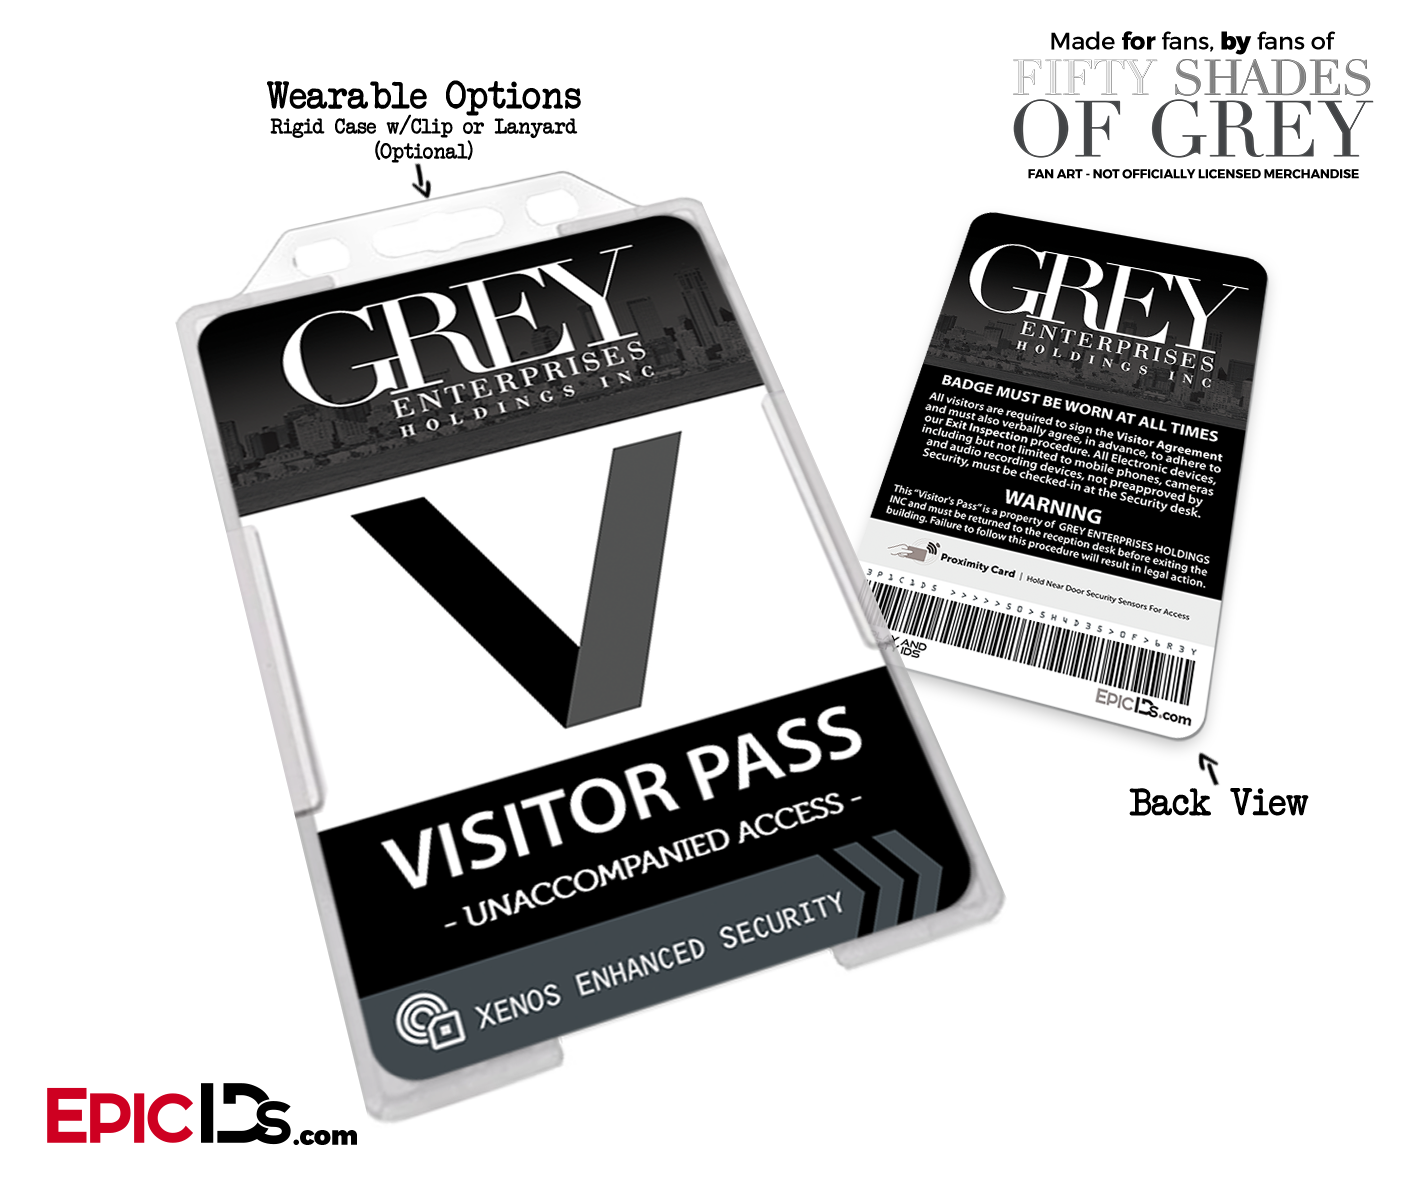 Clip movis fifty shades grey. Enterprises of cosplay visitor